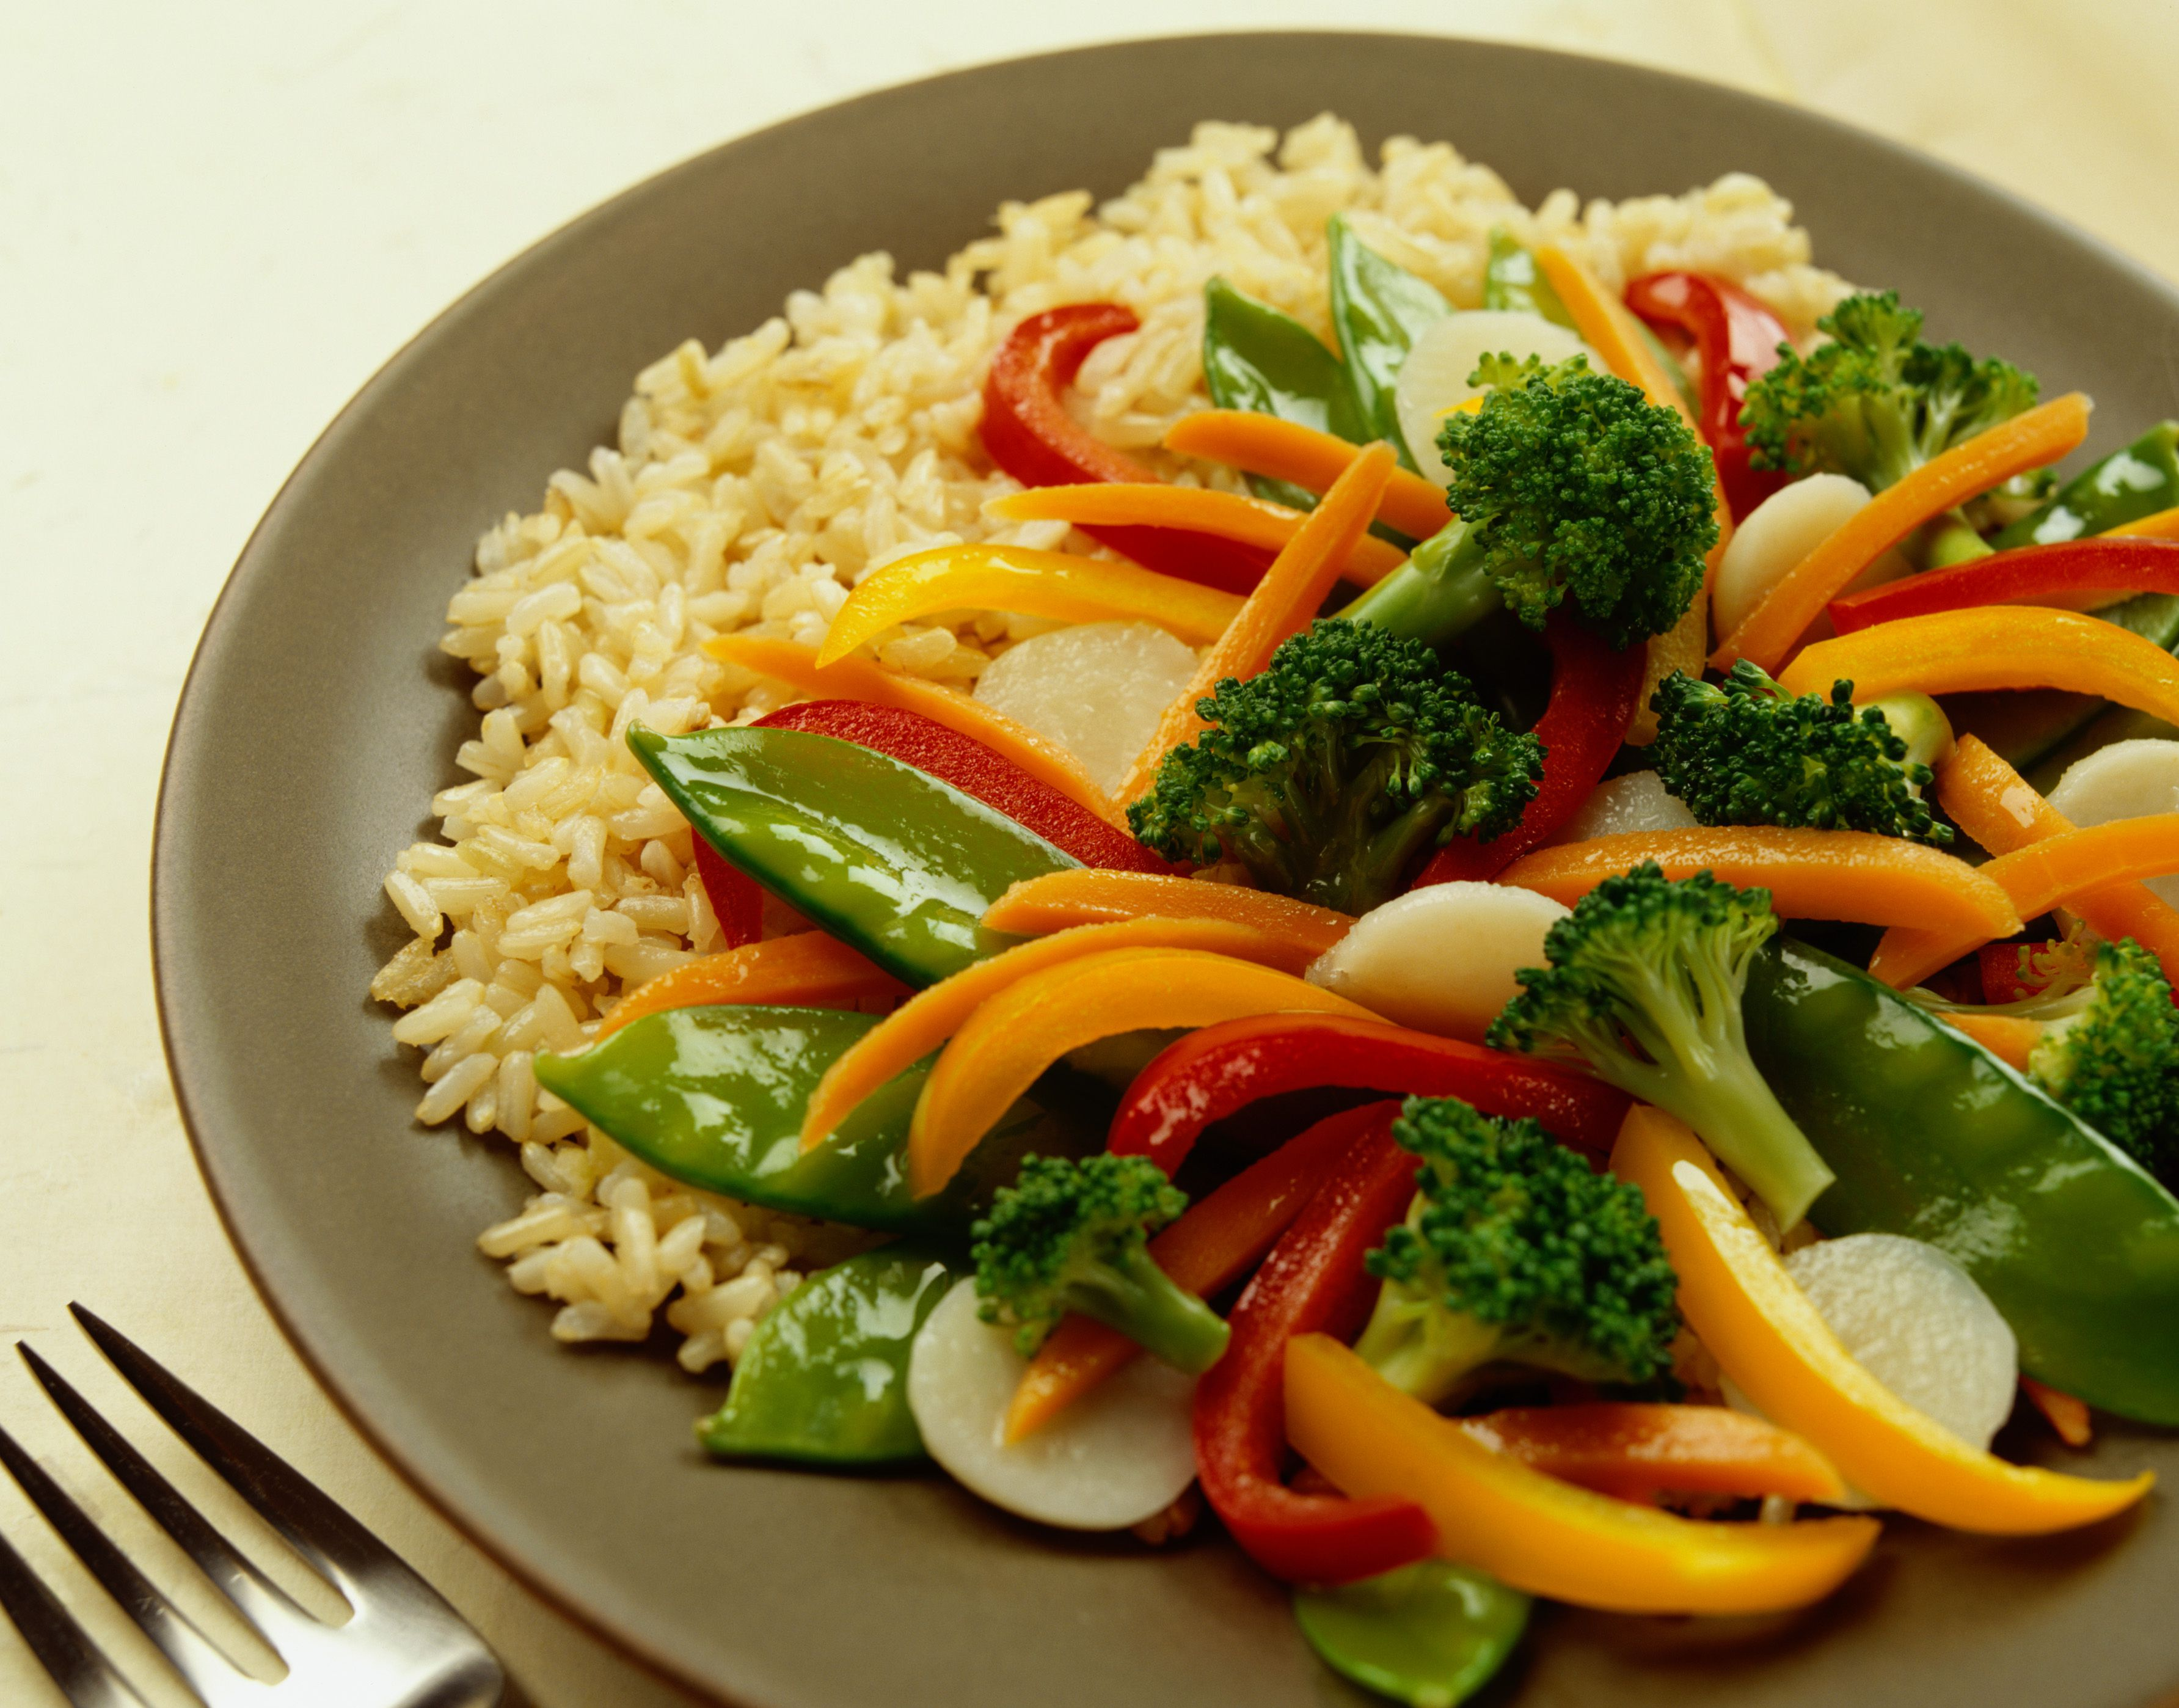 Try This Rau Xao or Vietnamese Stir Fried Mixed Vegetables Recipe